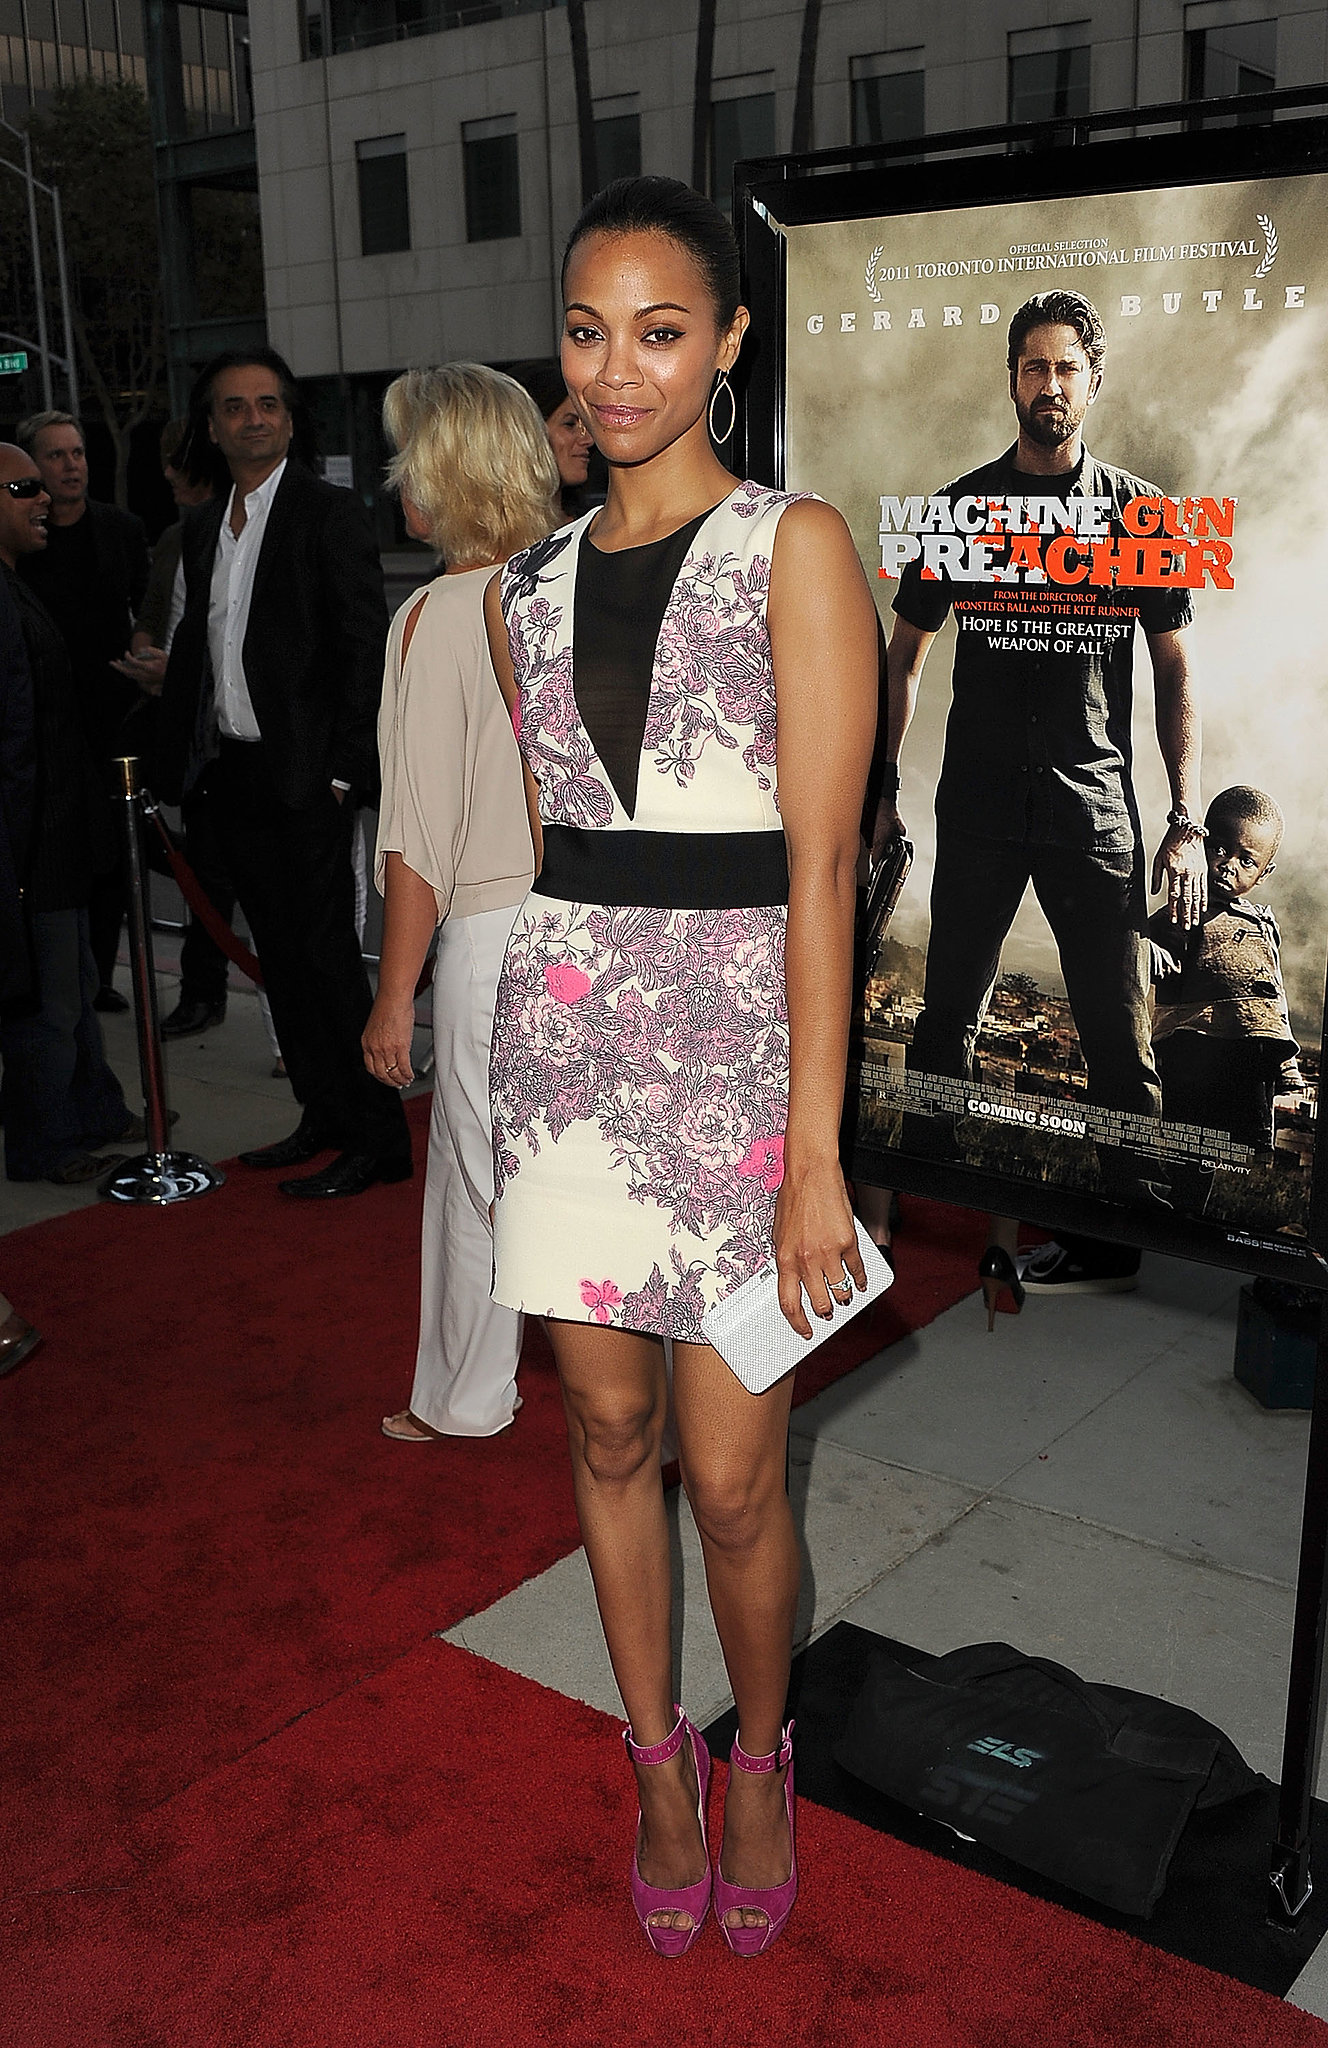 For the September 2011 premiere of Machine Gun Preacher, Zoe opted for bright florals via this Giambattista Valli number and fuchsia-hued Brian Atwood pumps.